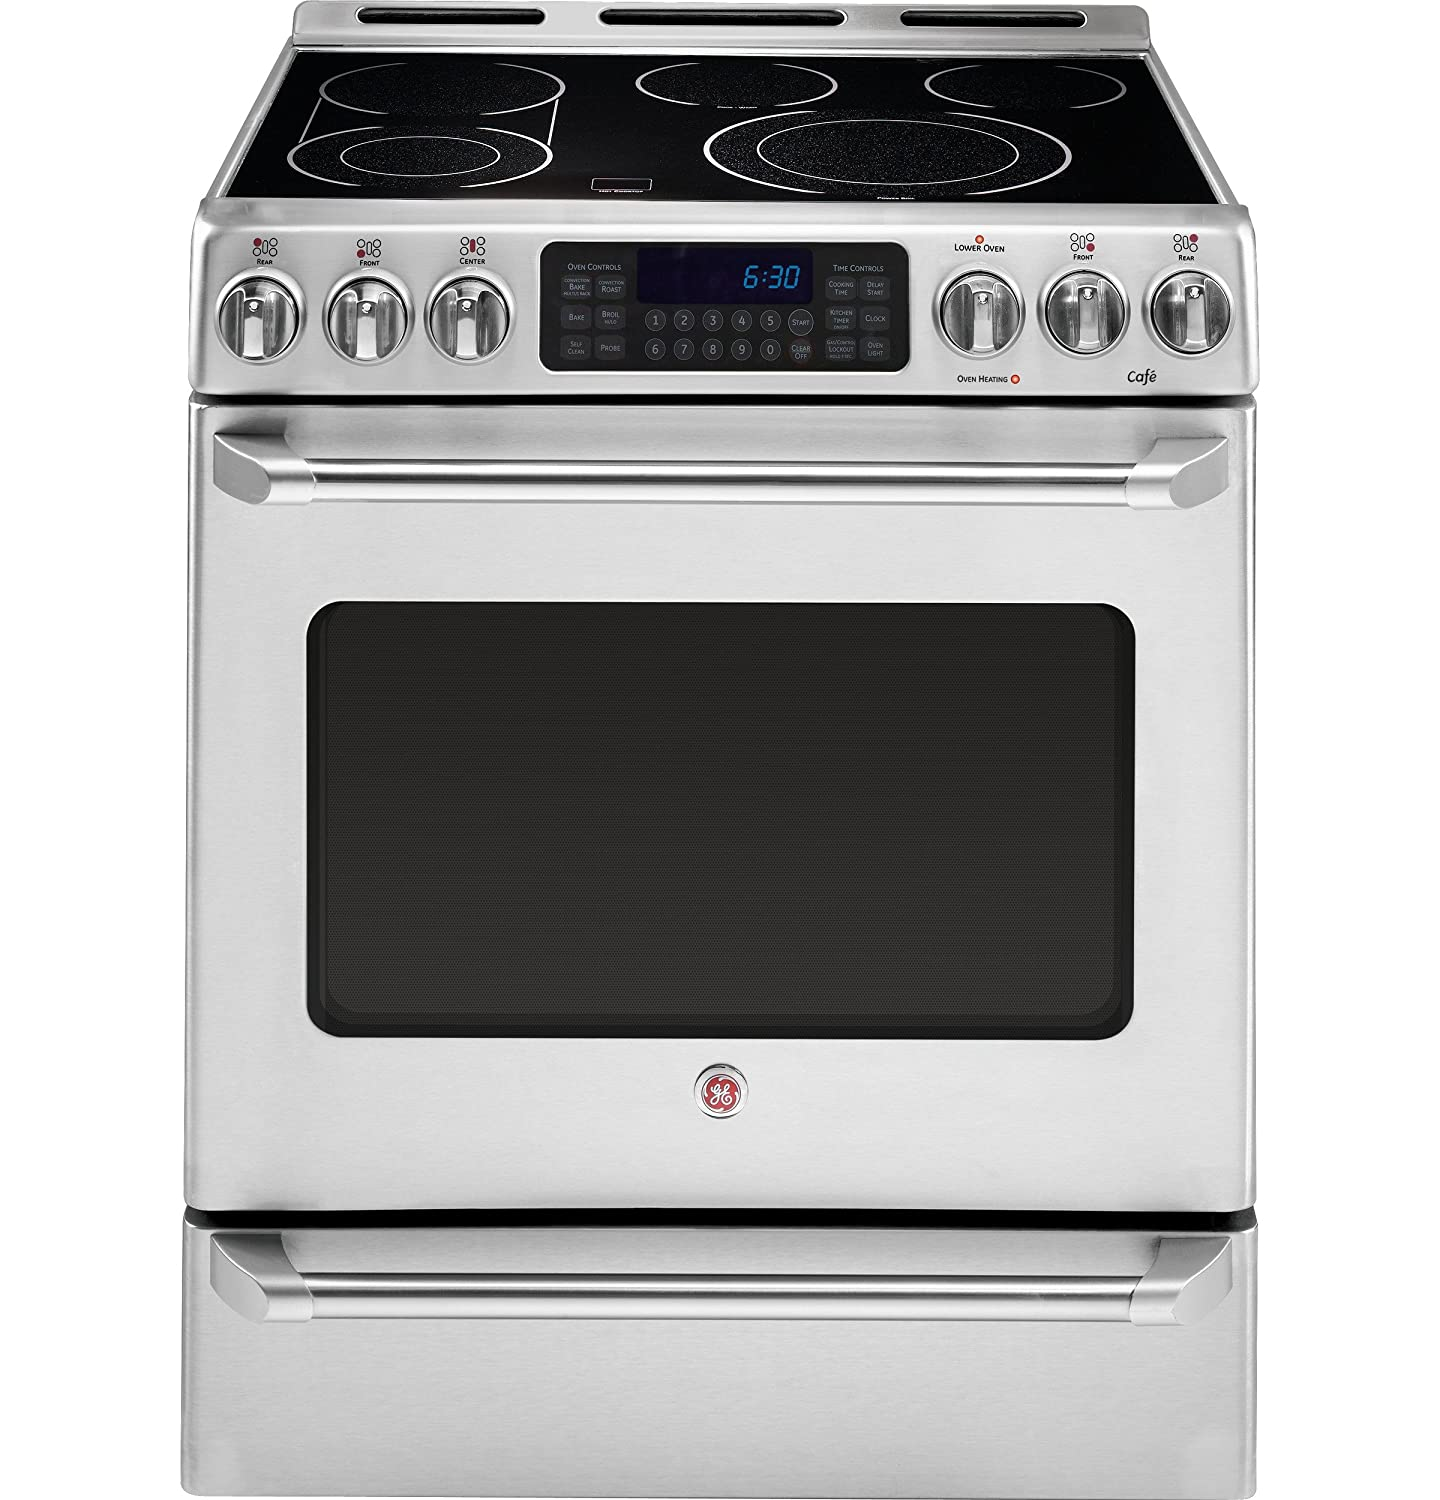 Ultimate Guide To Oven Safety Buying Tips Reviews And Our List Of Electric Vehicle Supply Equipment On Without Hard Wiring This Offers 5 Heating Elements Ges Preciseair Convection Bake So You Can Prepare Your Familys Favorite Recipes A Tee